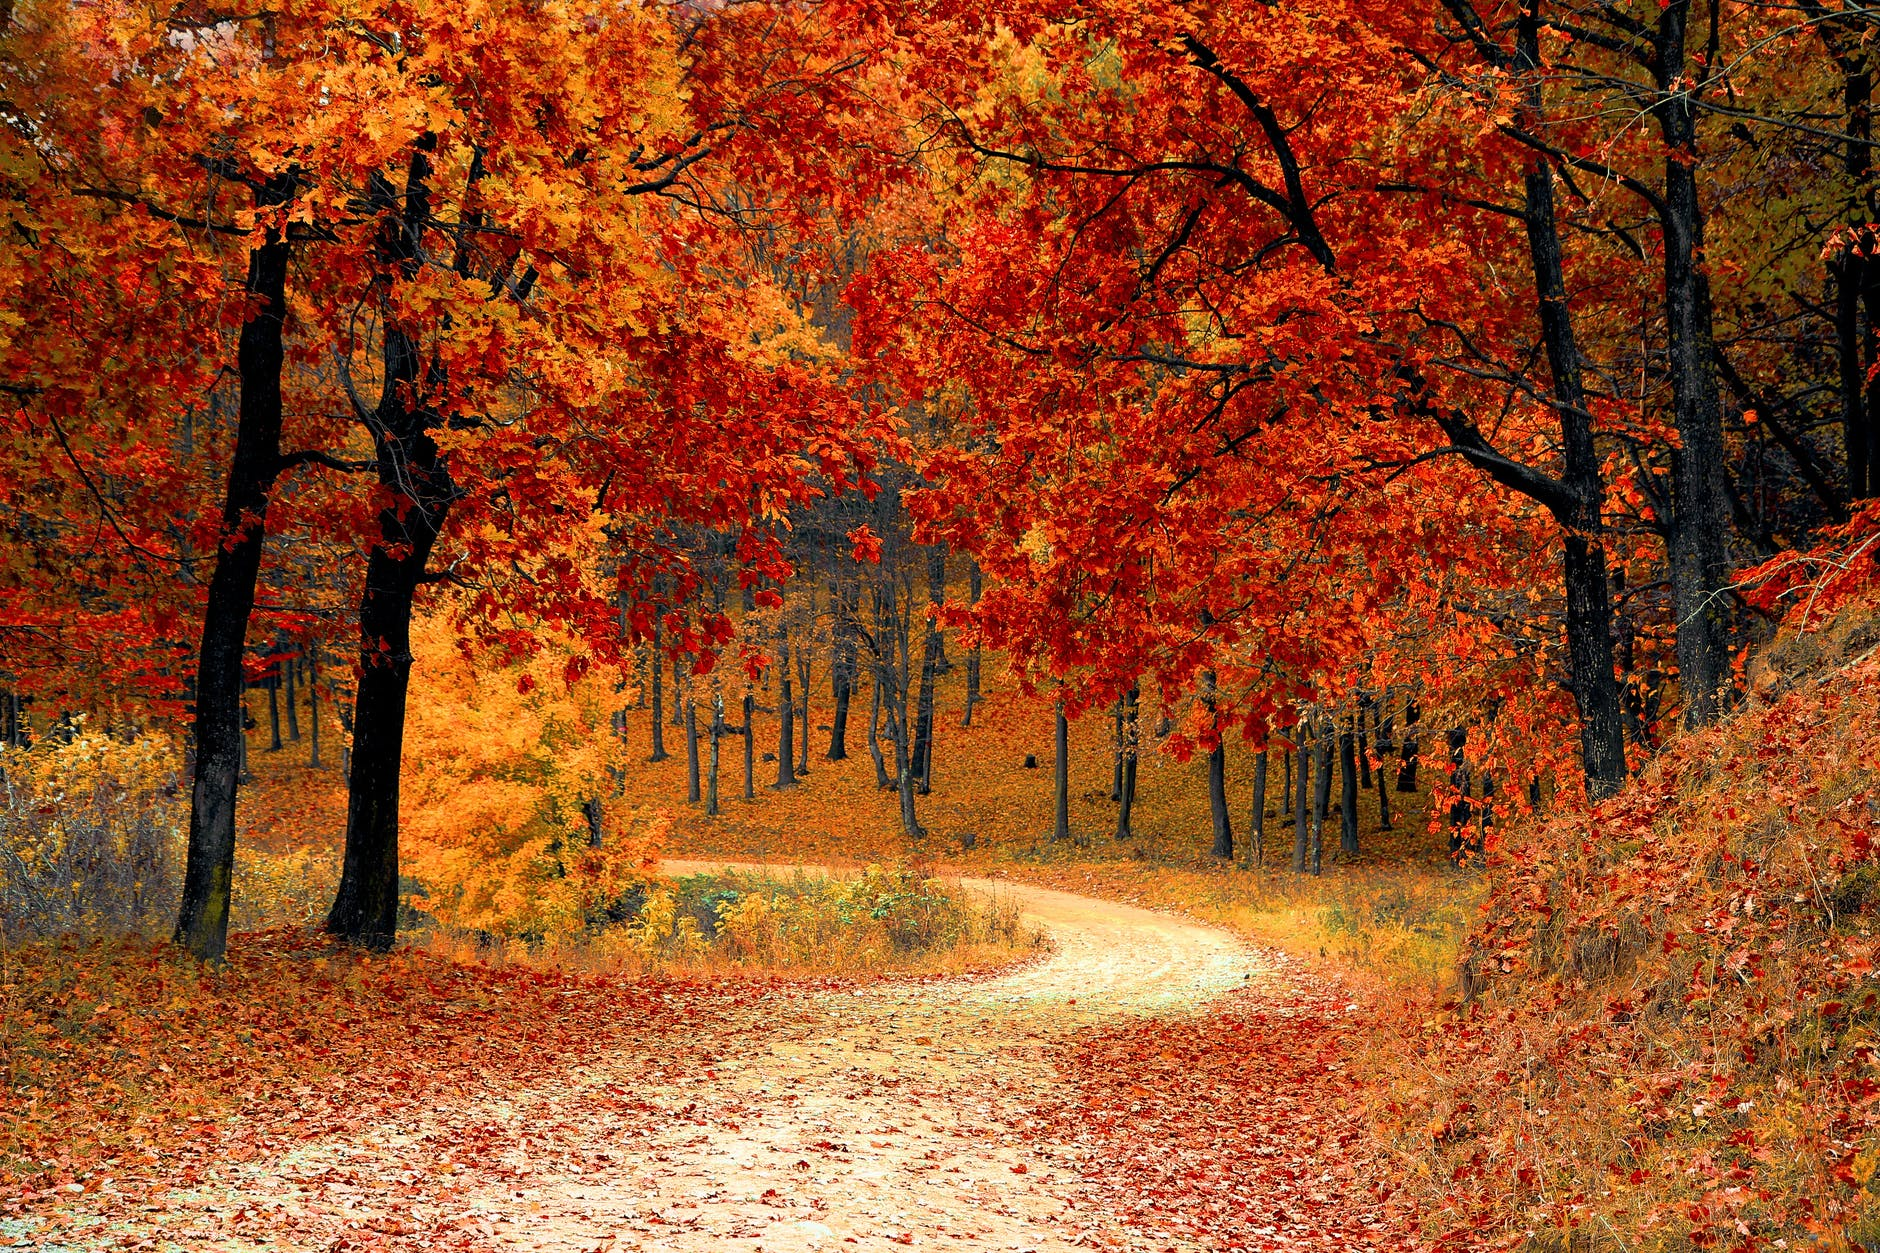 a road surrounded by trees in the fall